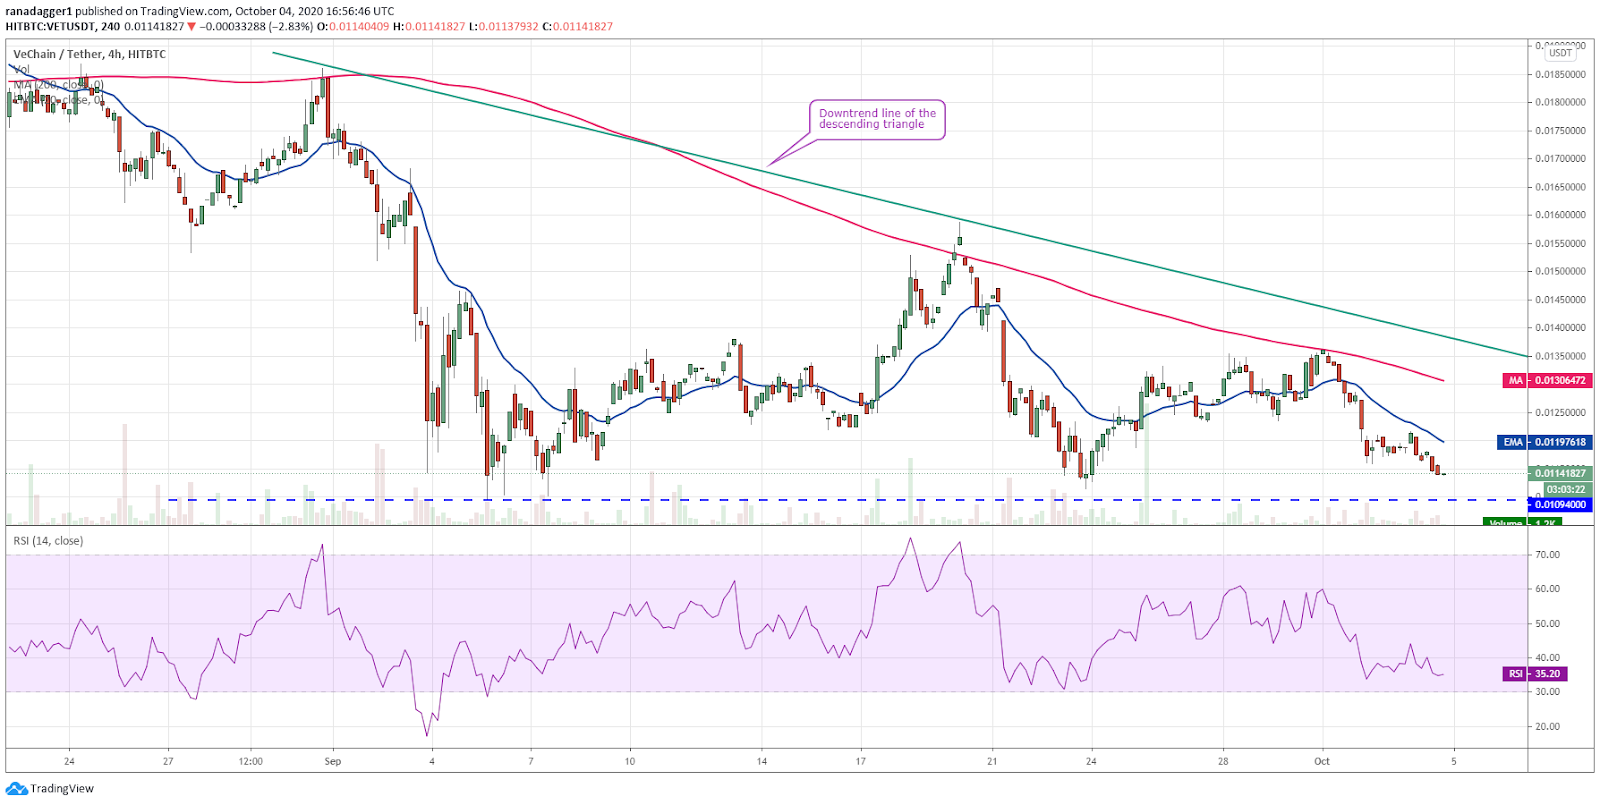 VET/USD 4-hour chart. Source: TradingView